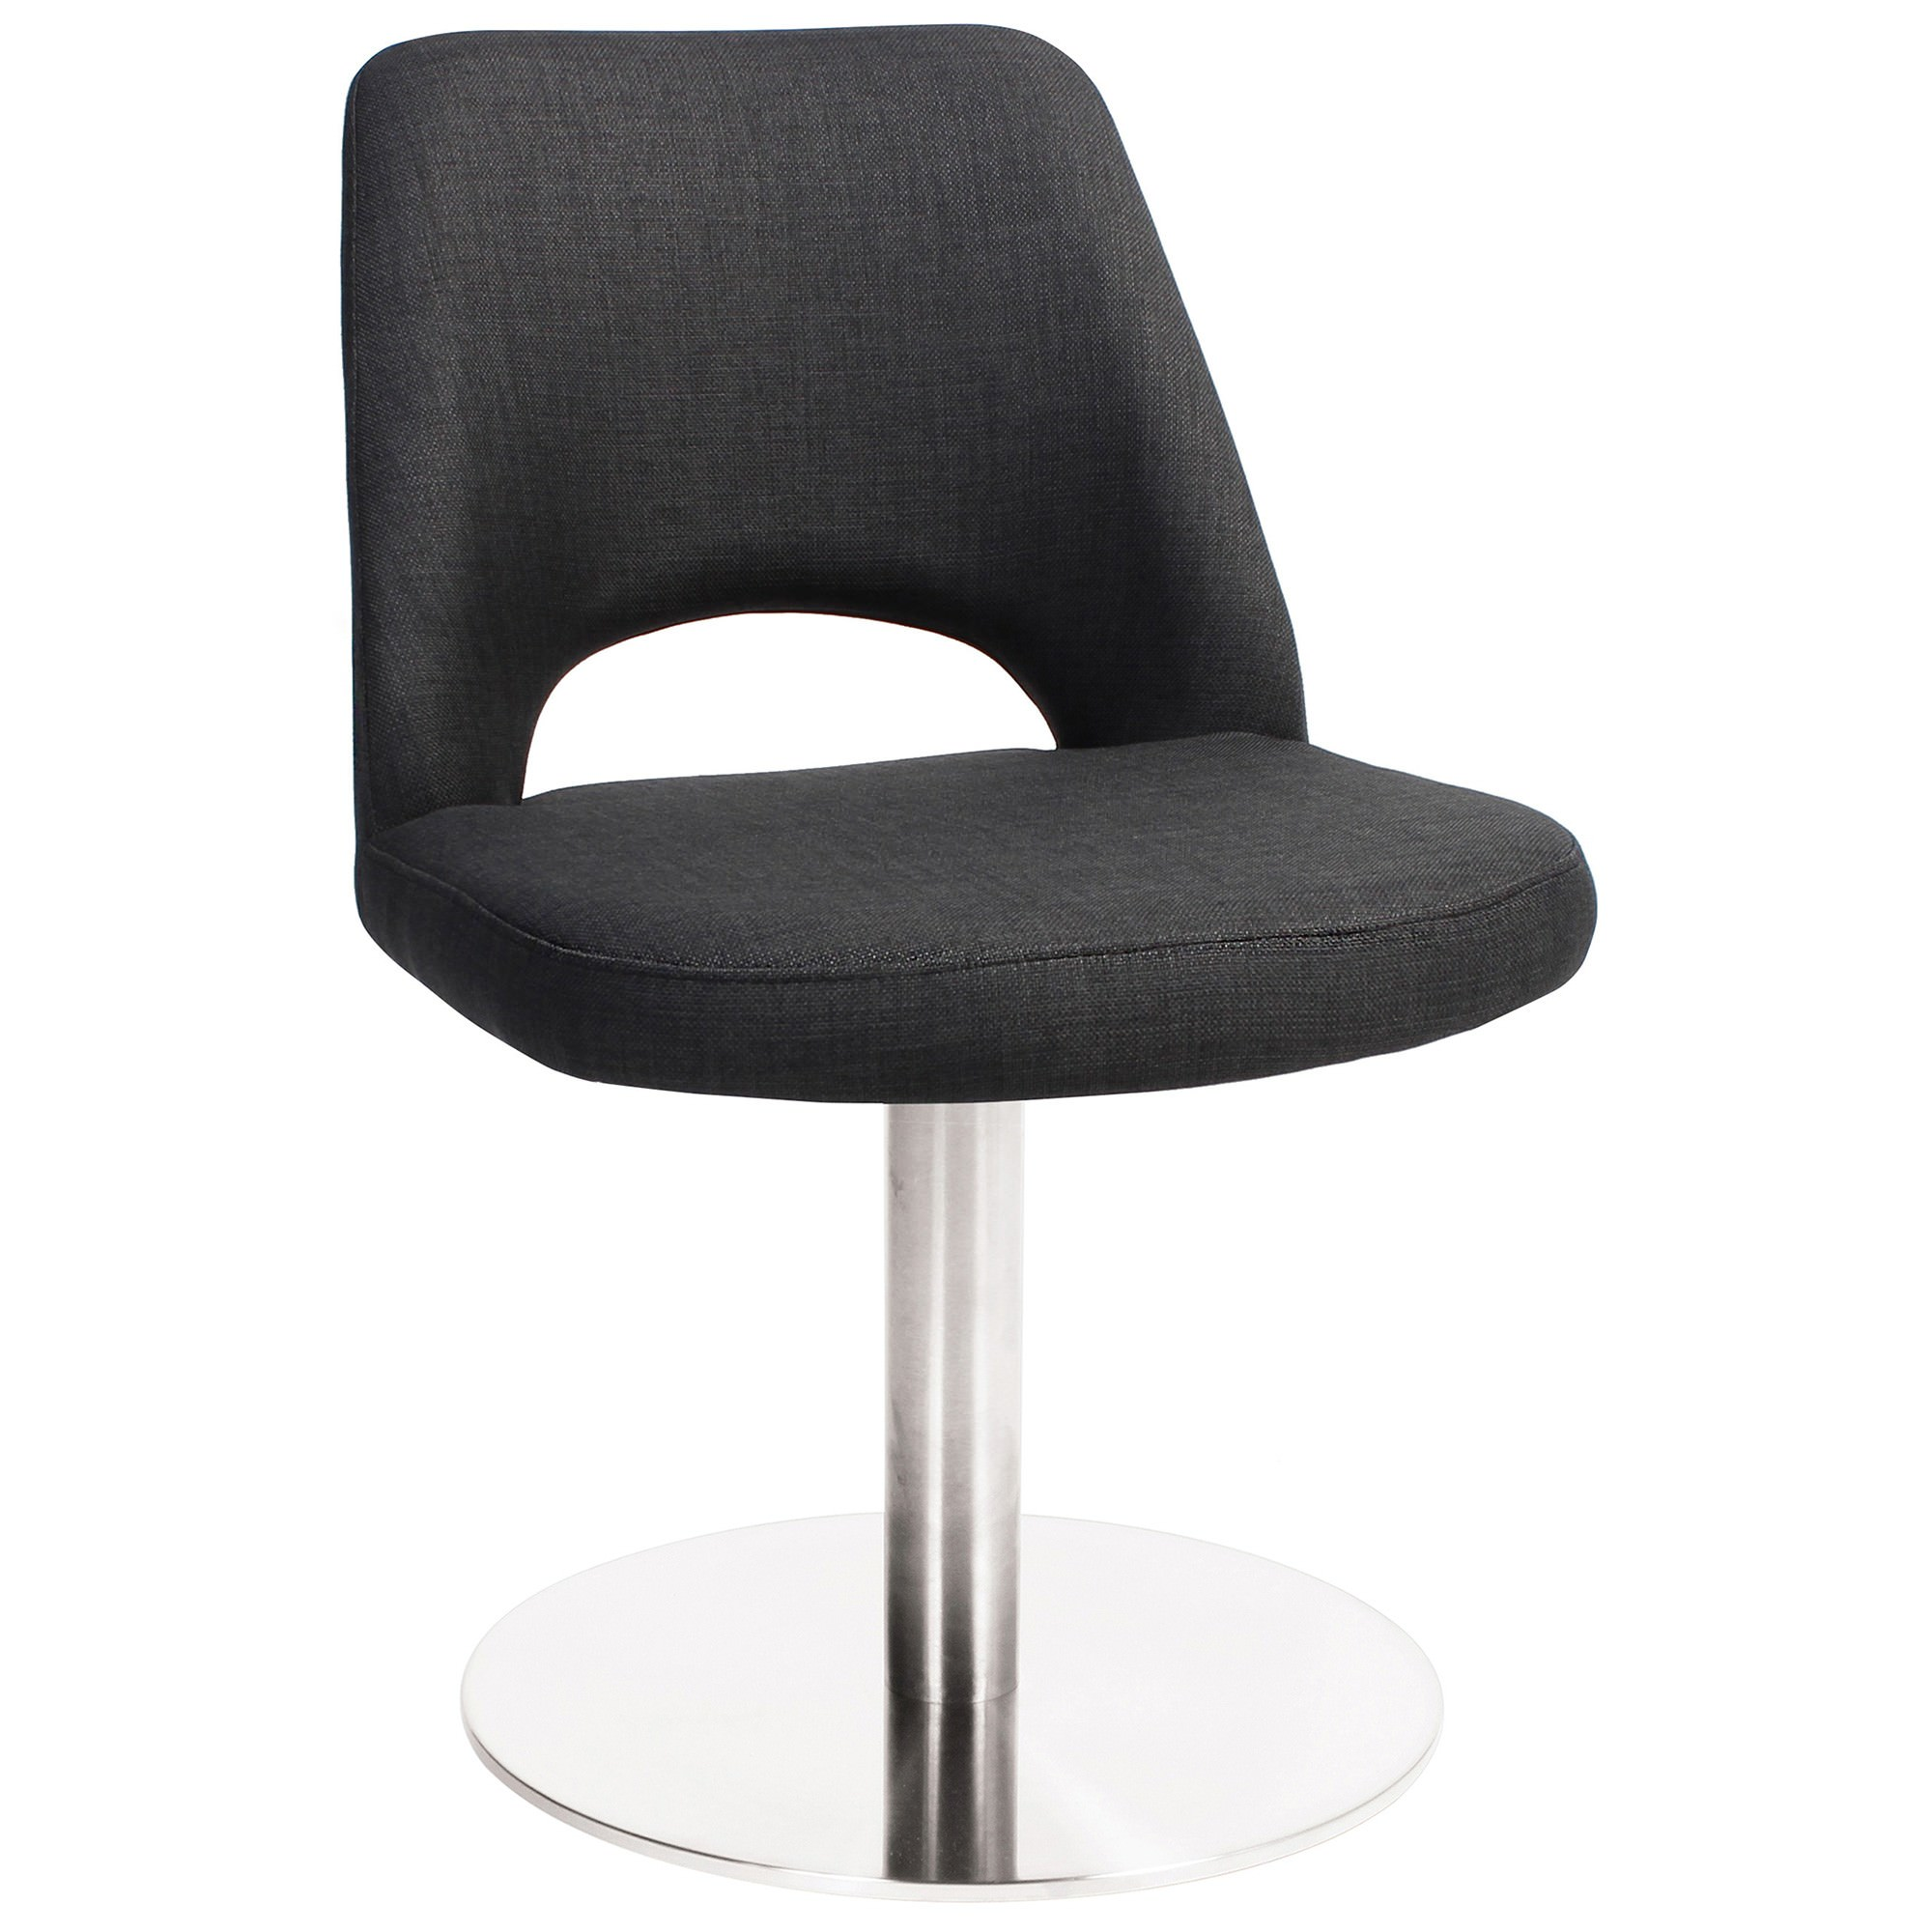 Albury Commercial Grade Fabric Dining Stool, Metal Disc Base, Charcoal / Silver